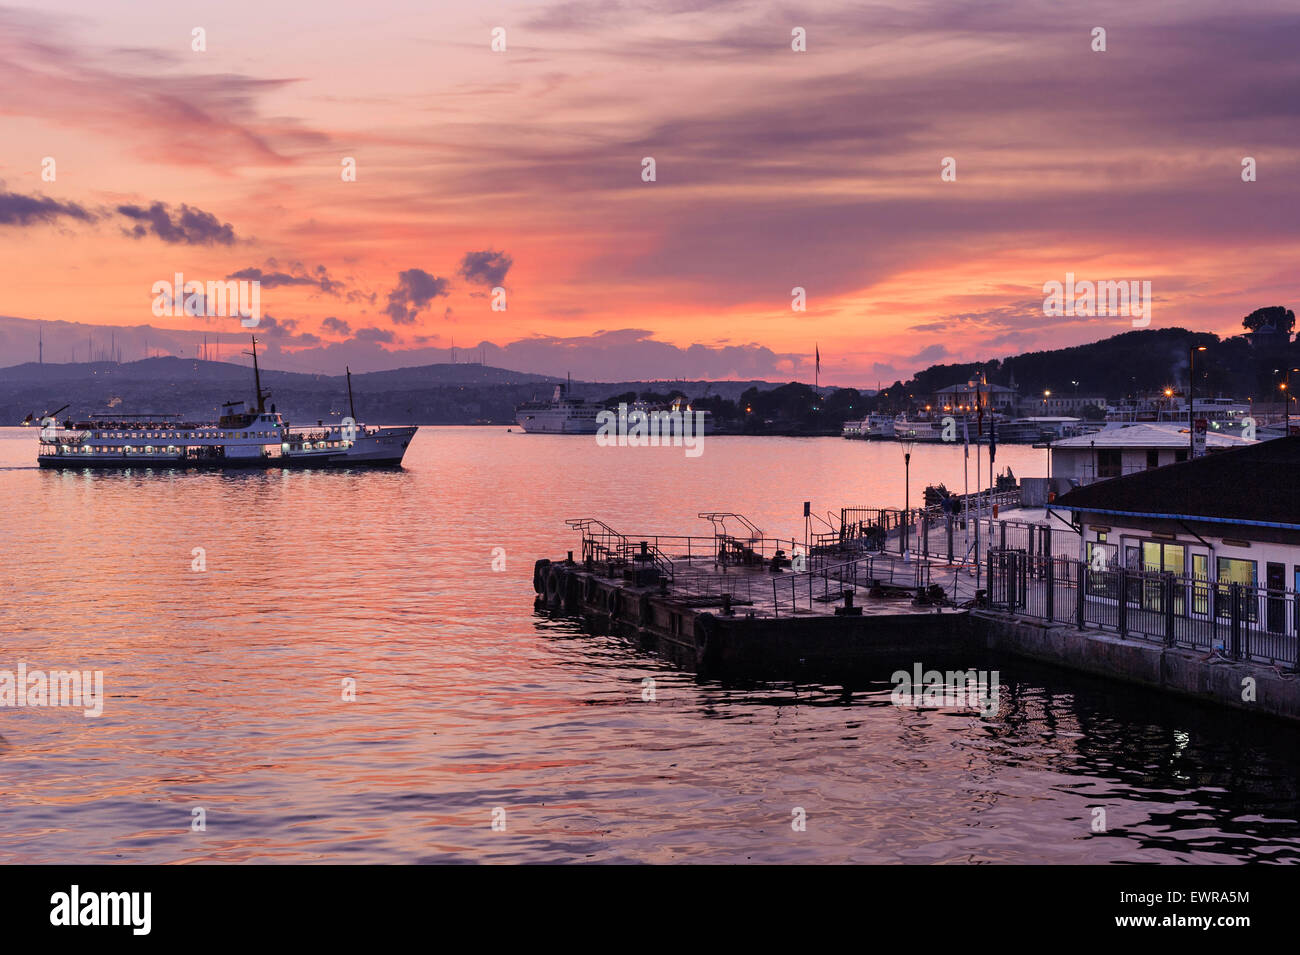 The Eminönü waterfront in Istanbul at dawn. - Stock Image